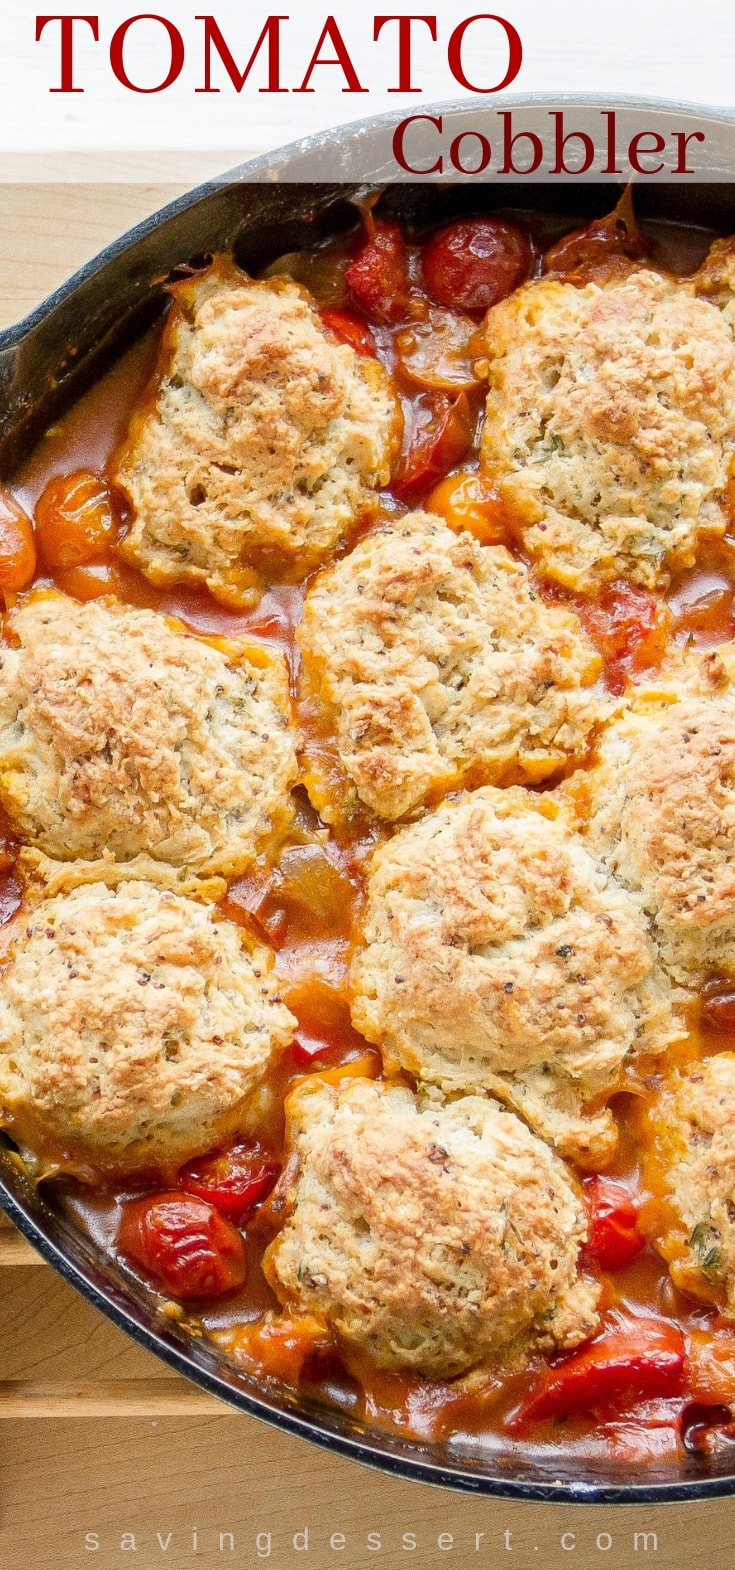 A skillet with savory tomato cobbler topped with herbed biscuits